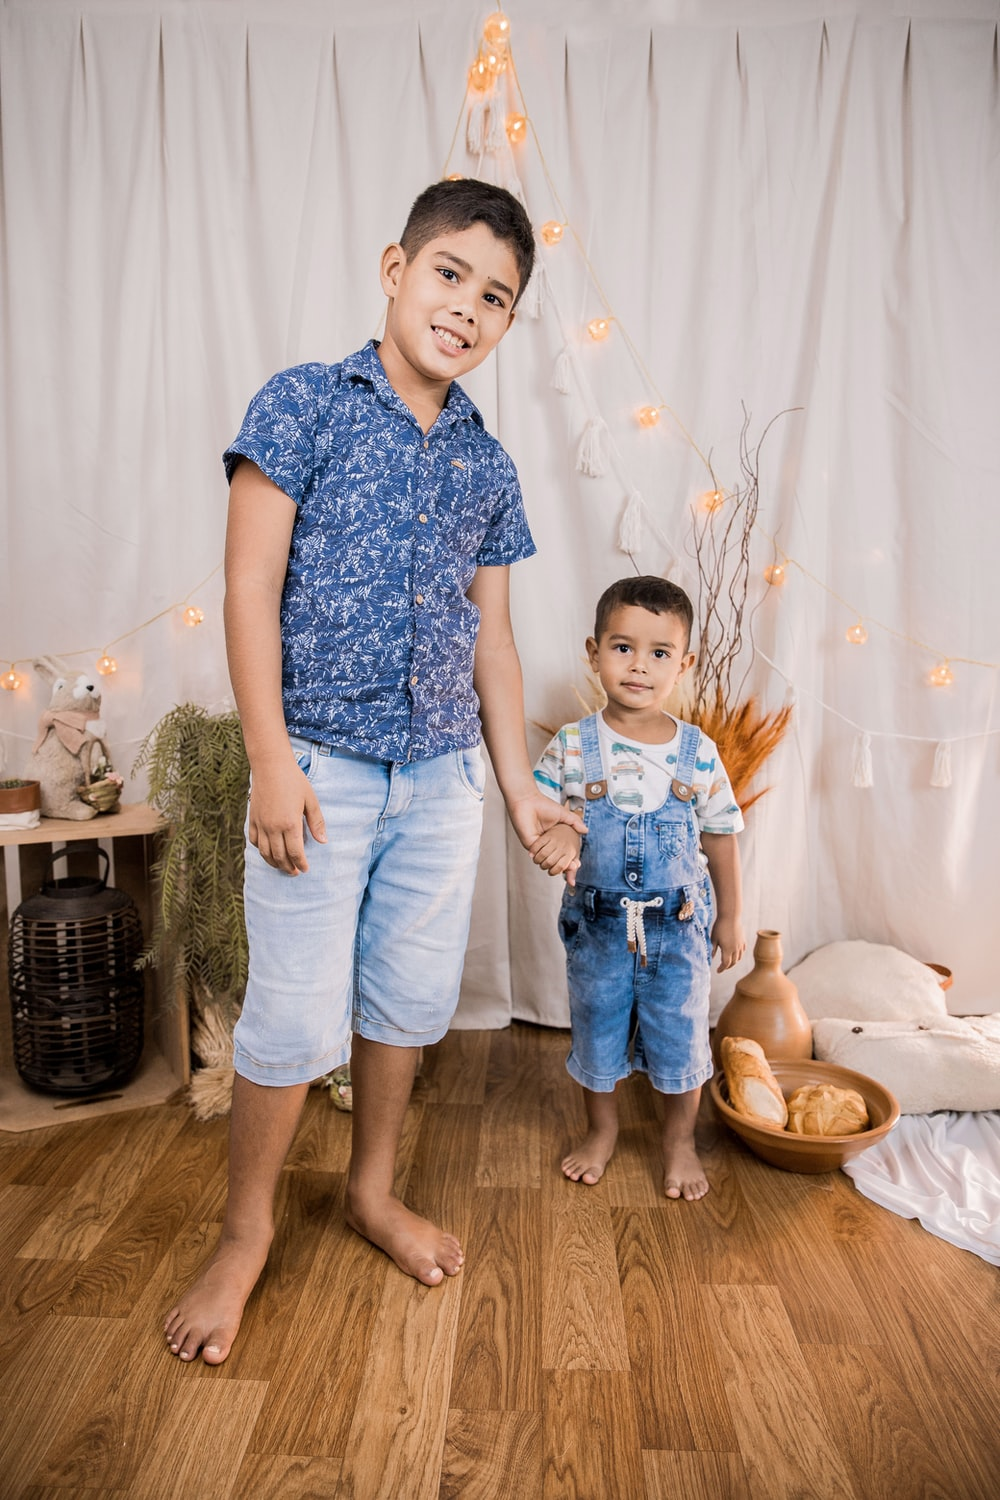 boy in blue and white floral button up t-shirt and blue denim jeans standing beside